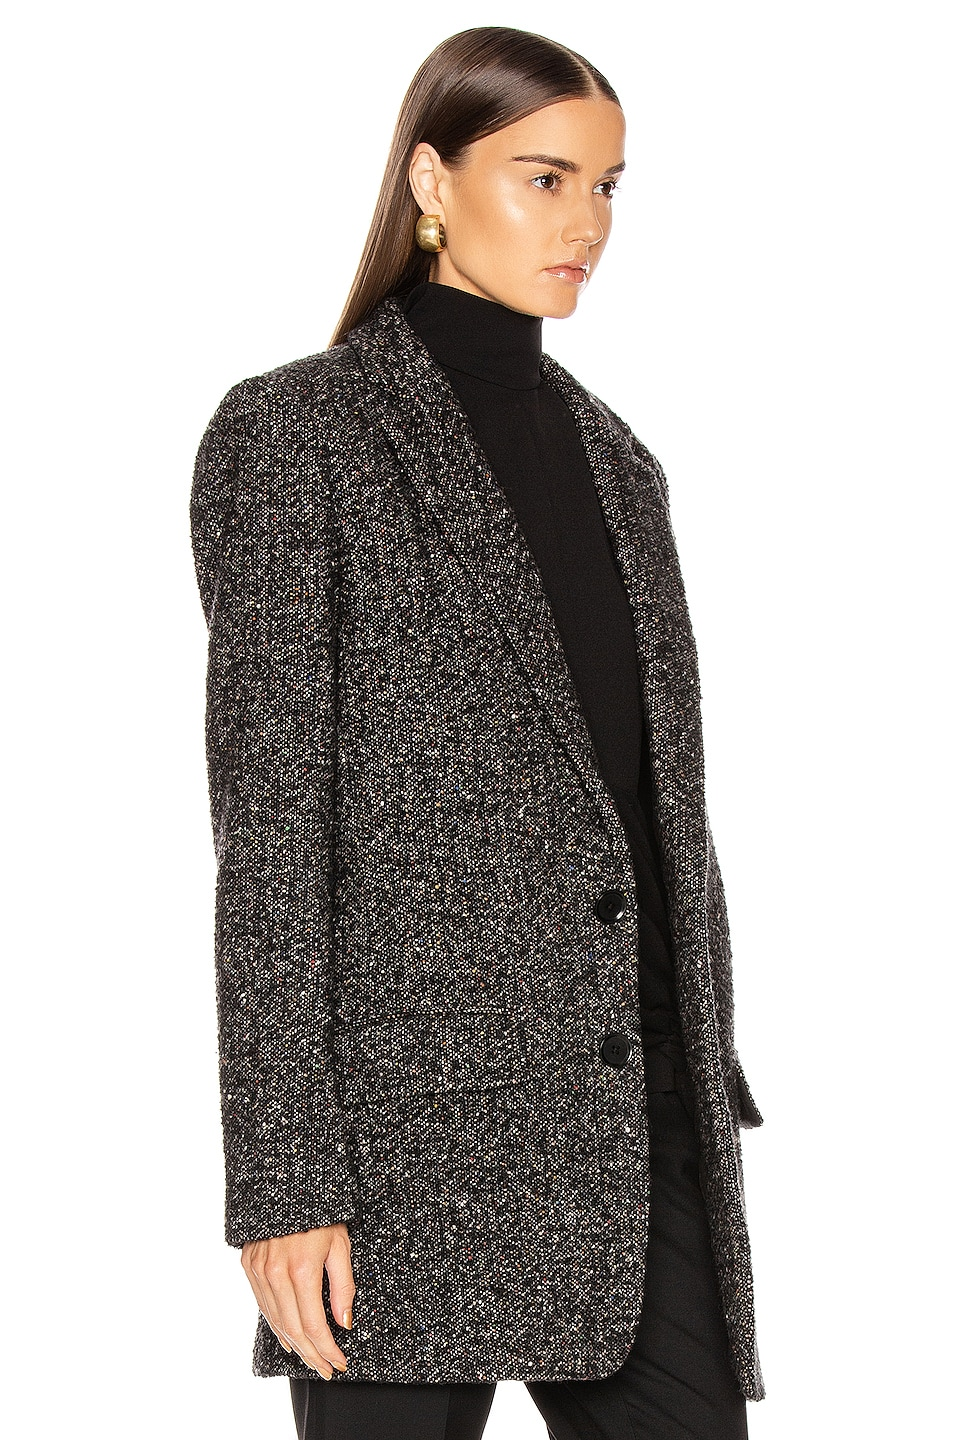 Image 3 of Tibi Multi Color Tweed Long Blazer in Black Multi